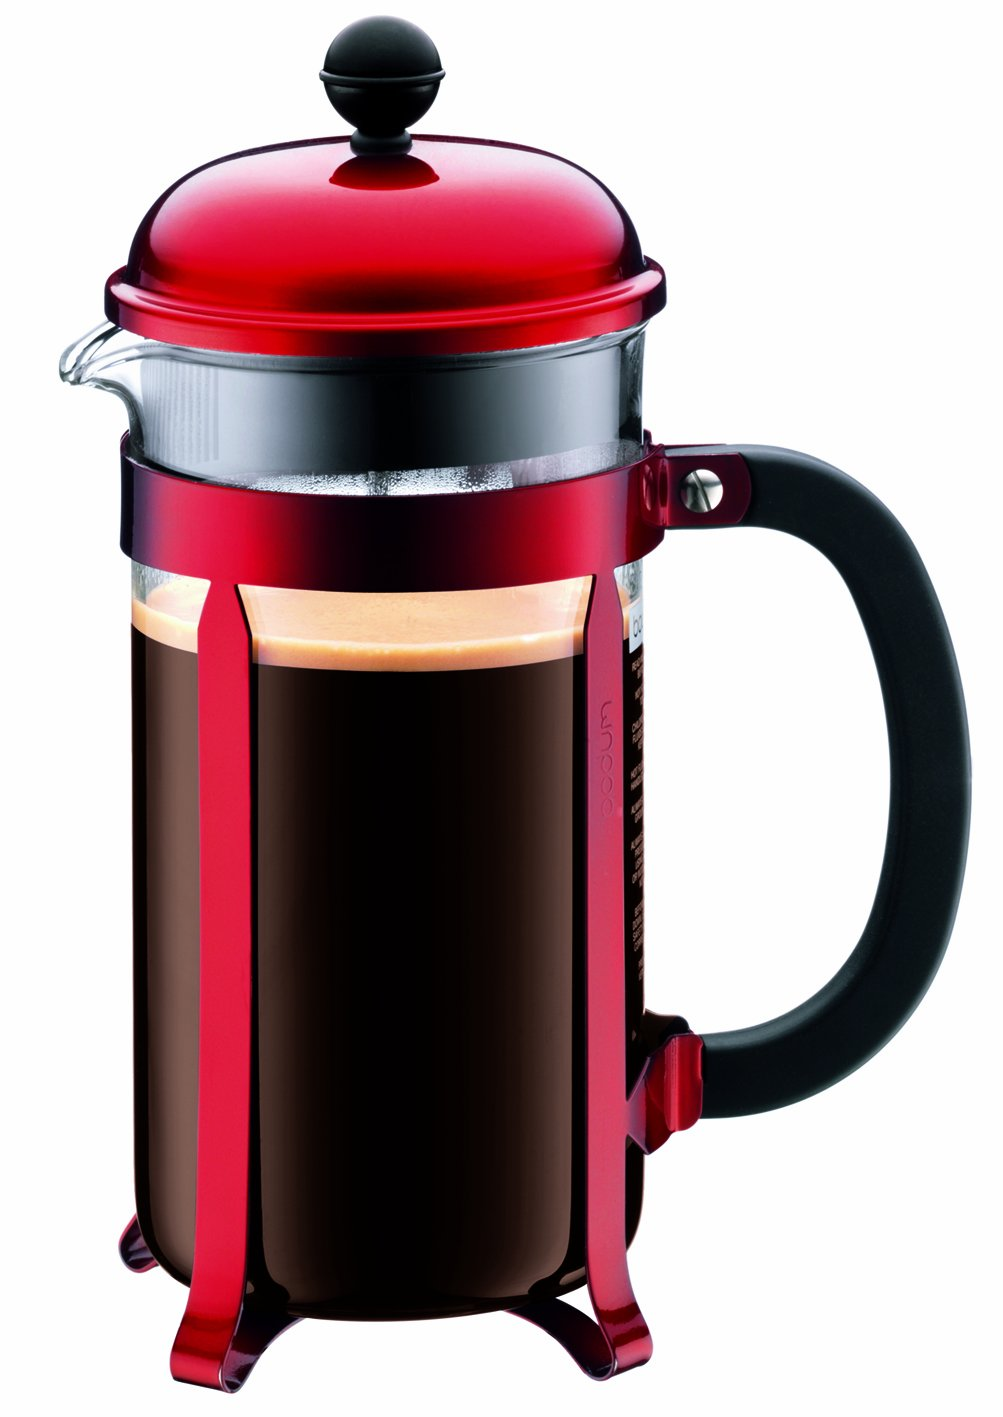 Bodum Chambord 8 Cup Shatterproof French Press Coffeemaker